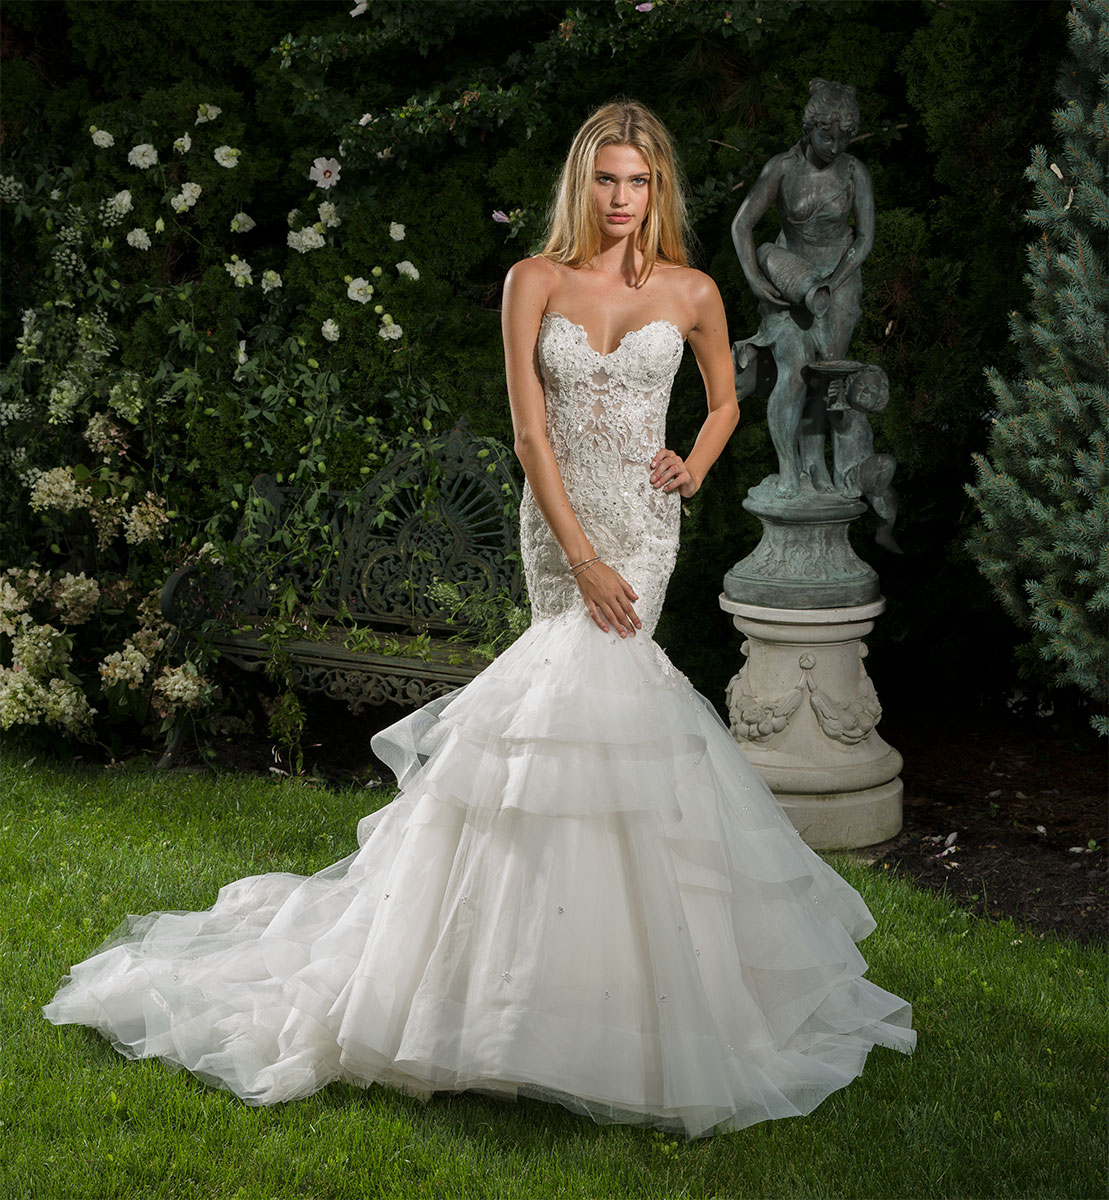 Beaded Sweetheart Neck Sheer Bodice Fit And Flare Wedding Dress  Kleinfeld Bridal